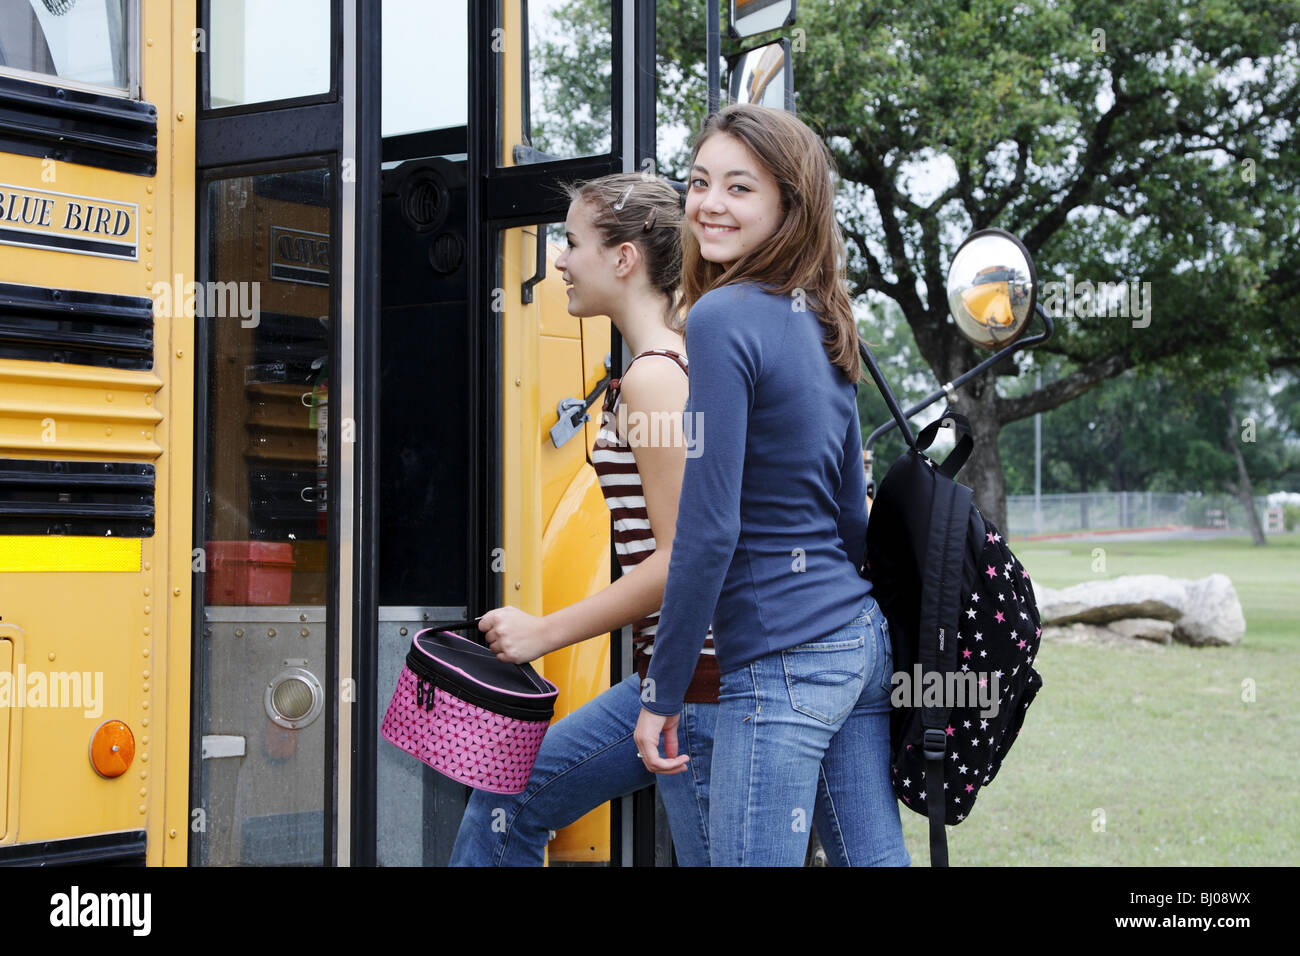 Students getting on a school bus - Stock Image